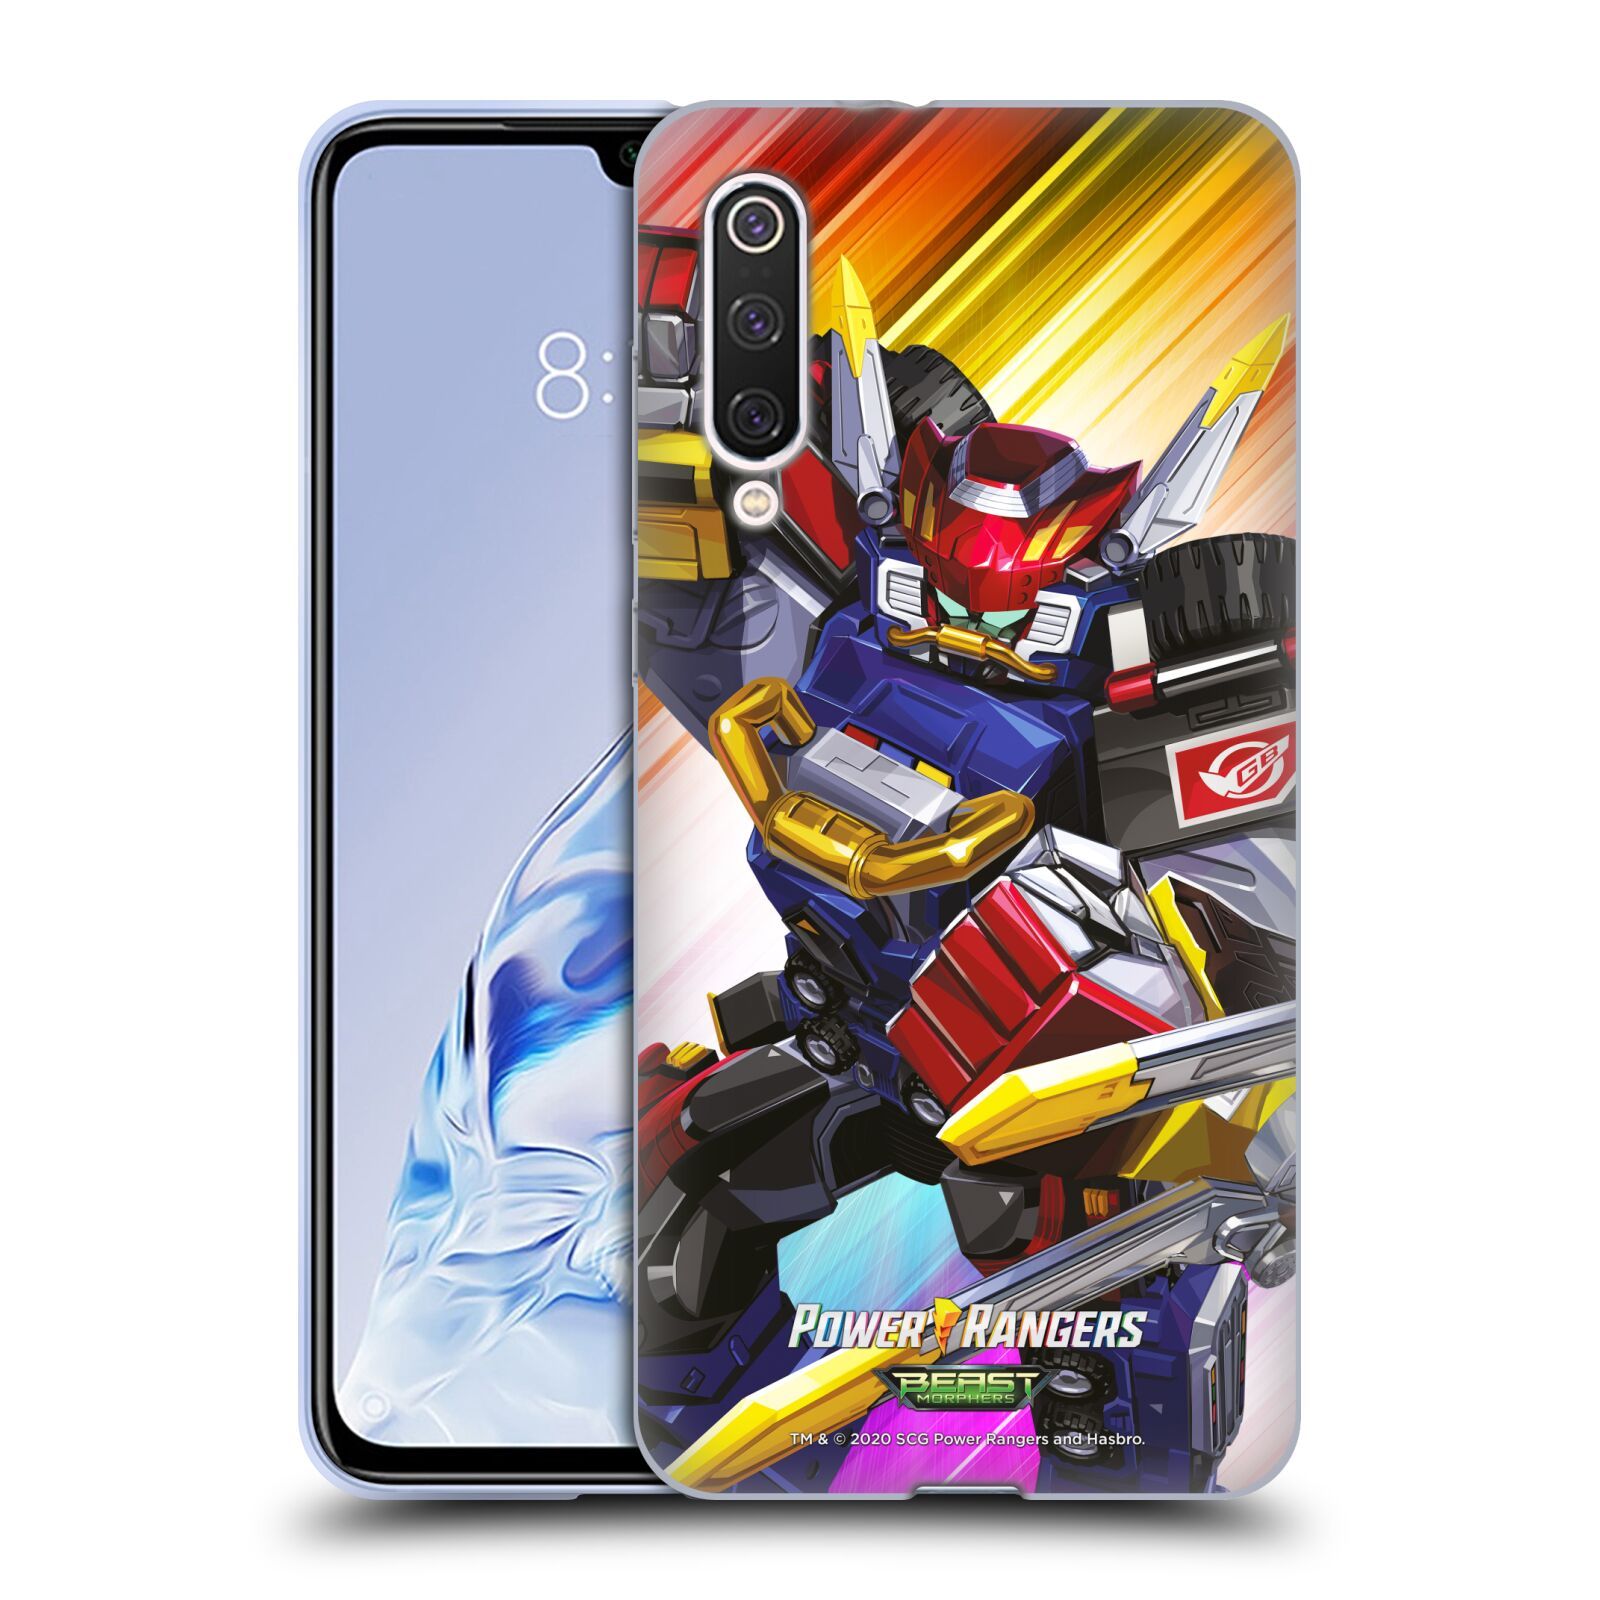 Official Power Rangers Beast Morphers Characters Megazord Gel Case for Xiaomi Mi 9 Pro / 5G